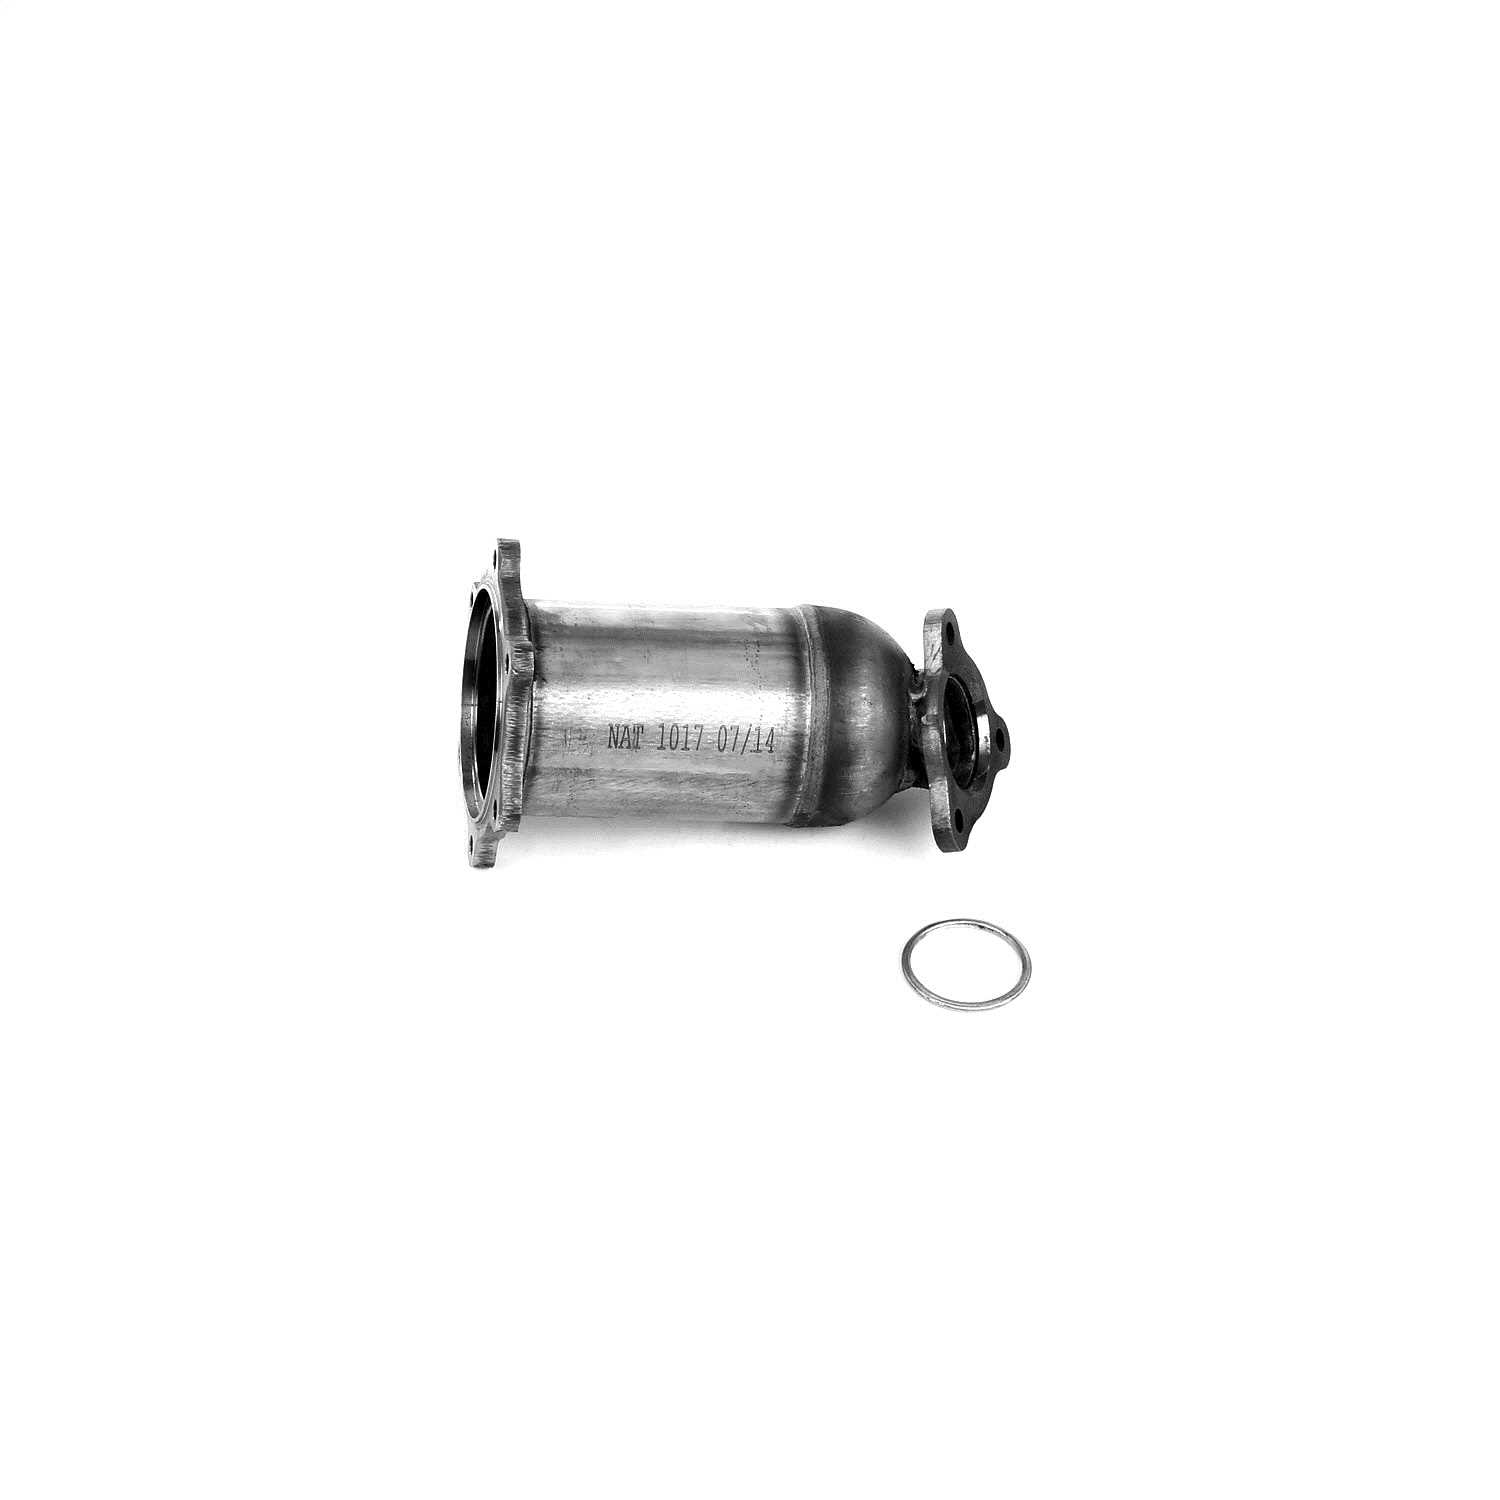 2071017 Flowmaster 49 State Catalytic Converters Direct Fit Catalytic Converter